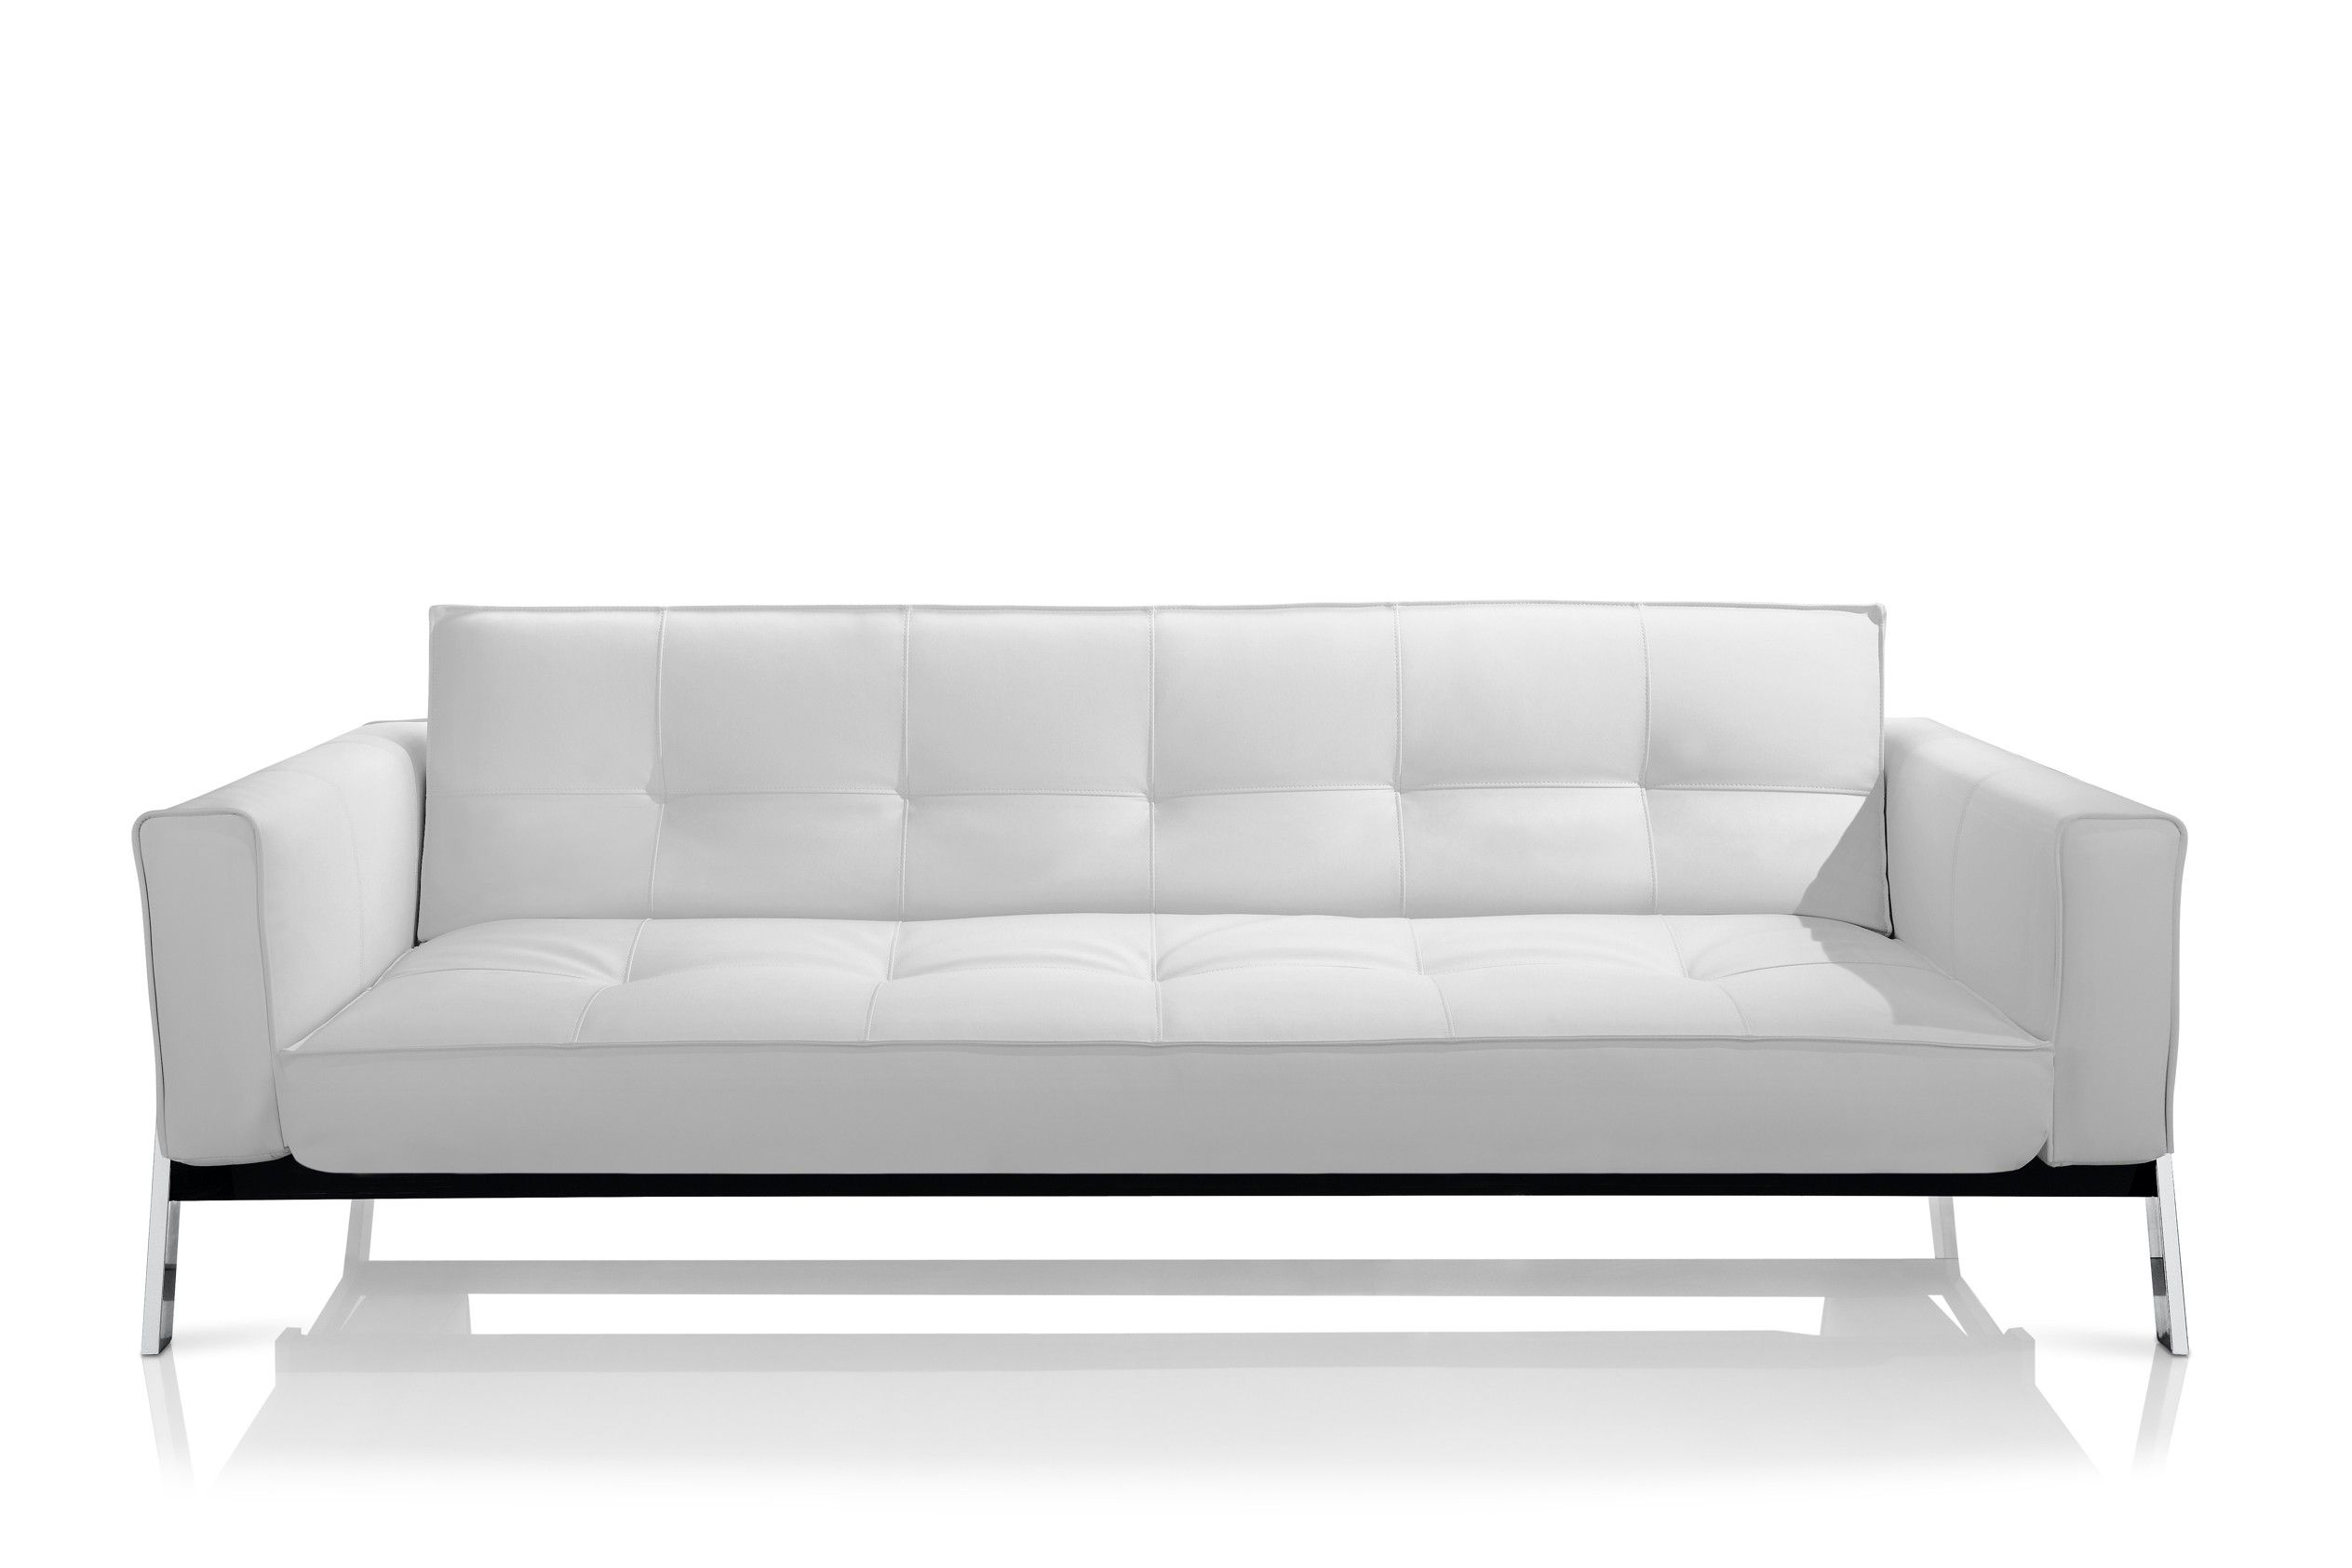 Online Sofa Cover Material Stylish Beds Canada White Fabric Sofas Couches At